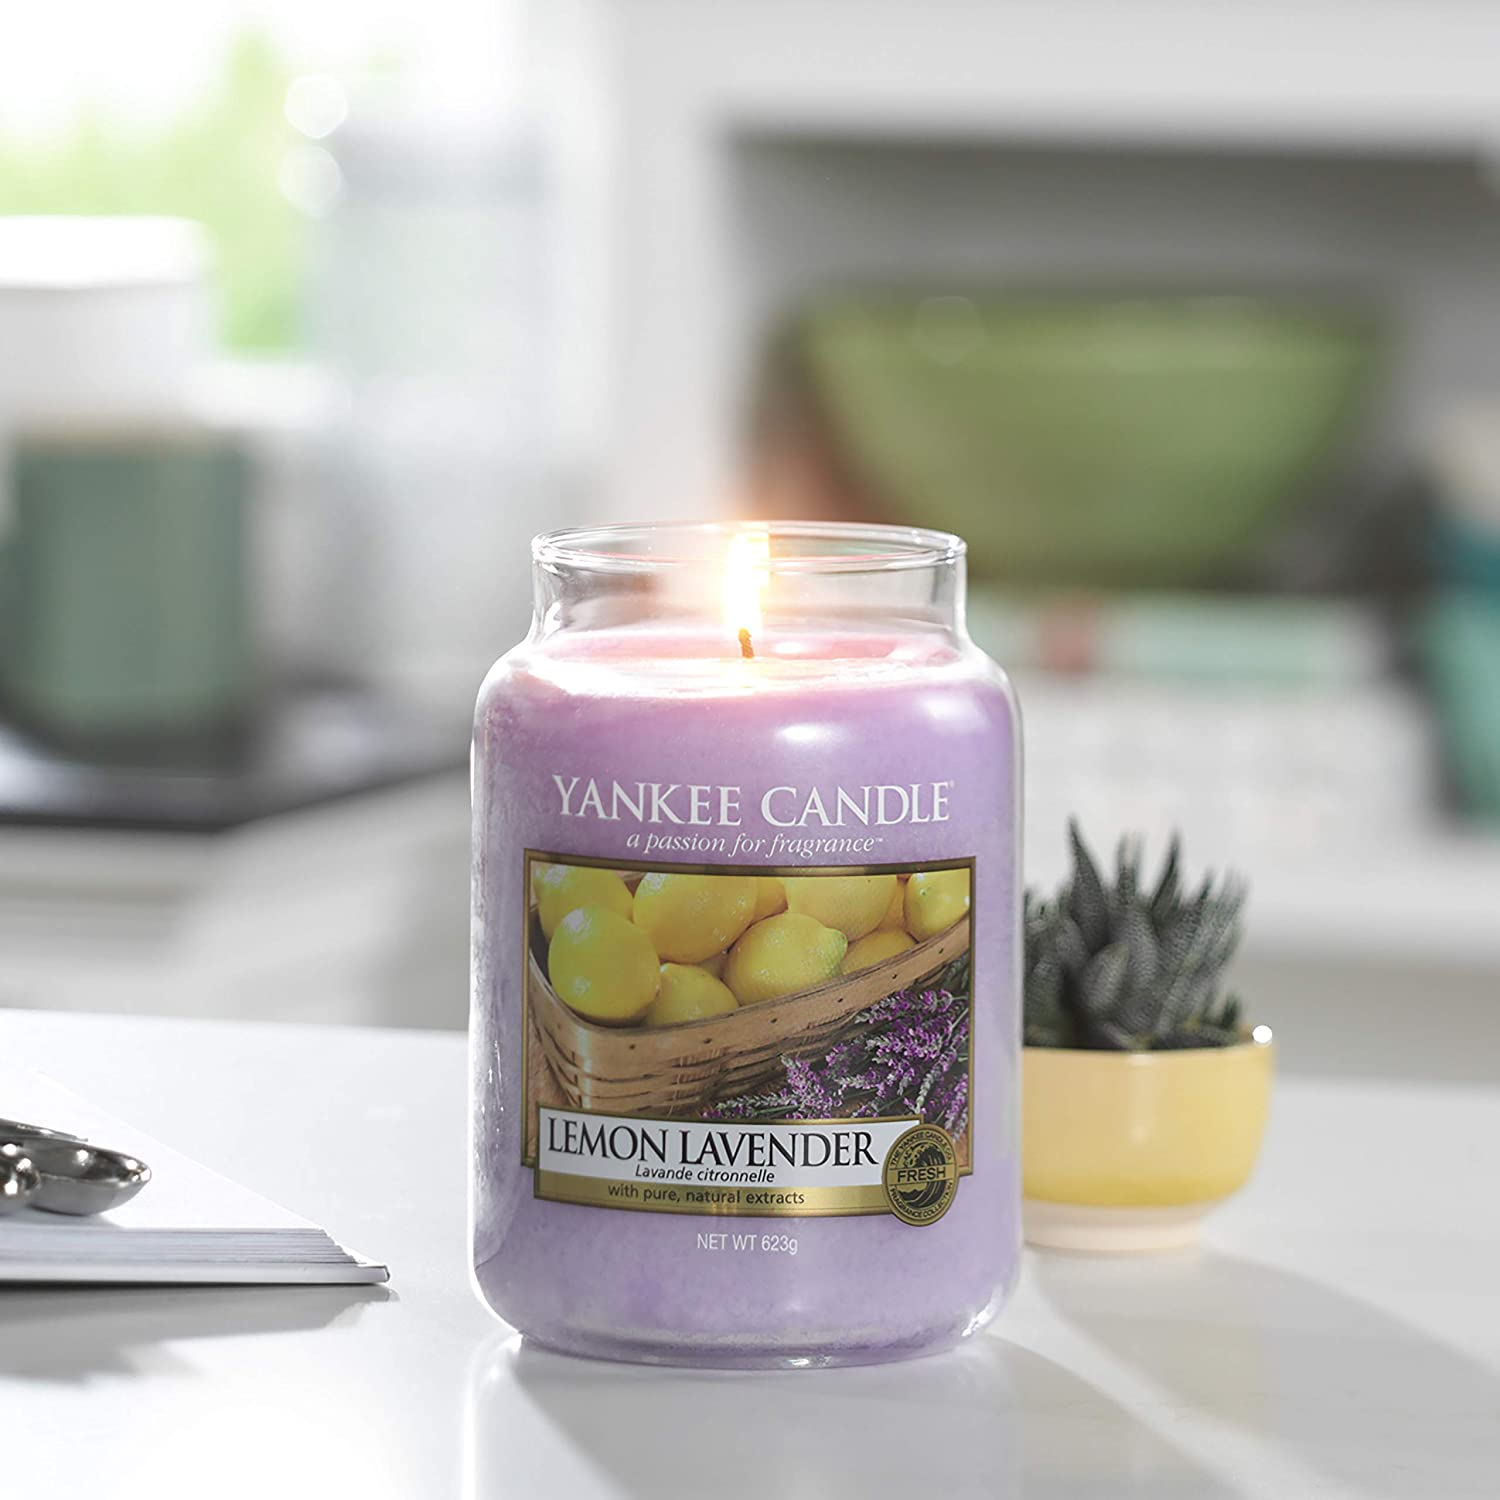 Lemon Lavender FREE DELIVERY Yankee Candle Large Jar Candle